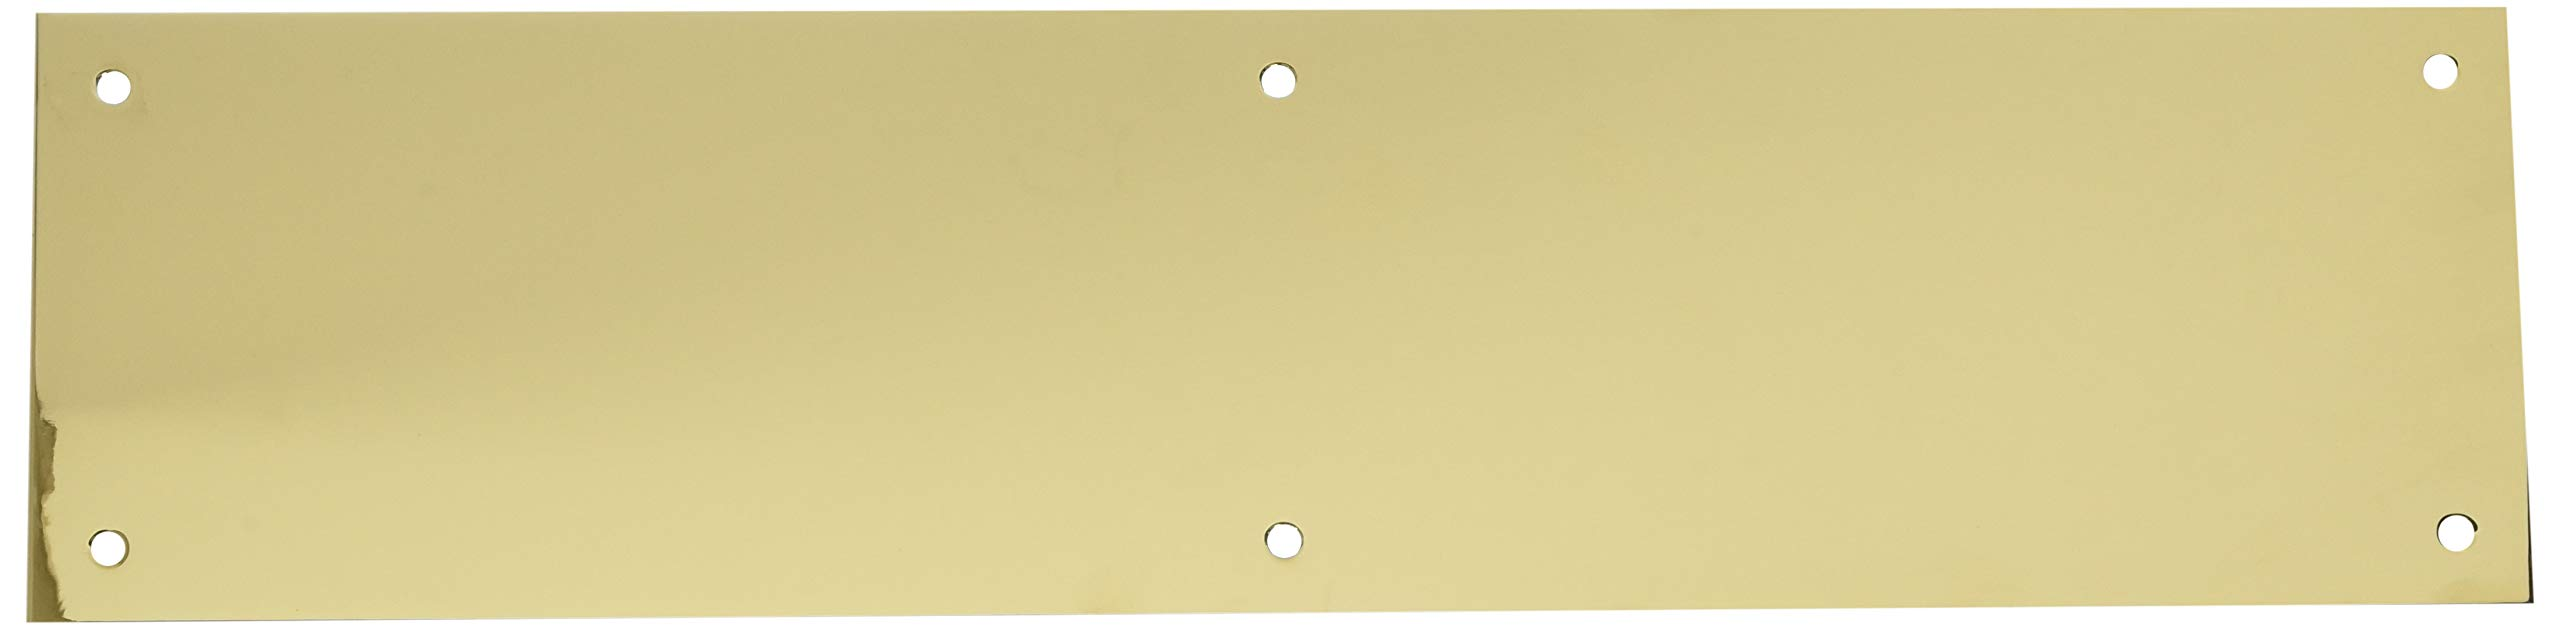 Baldwin 2124 4 Inch x 16 Inch Solid Brass Square Edge Push Plate, Polished Brass